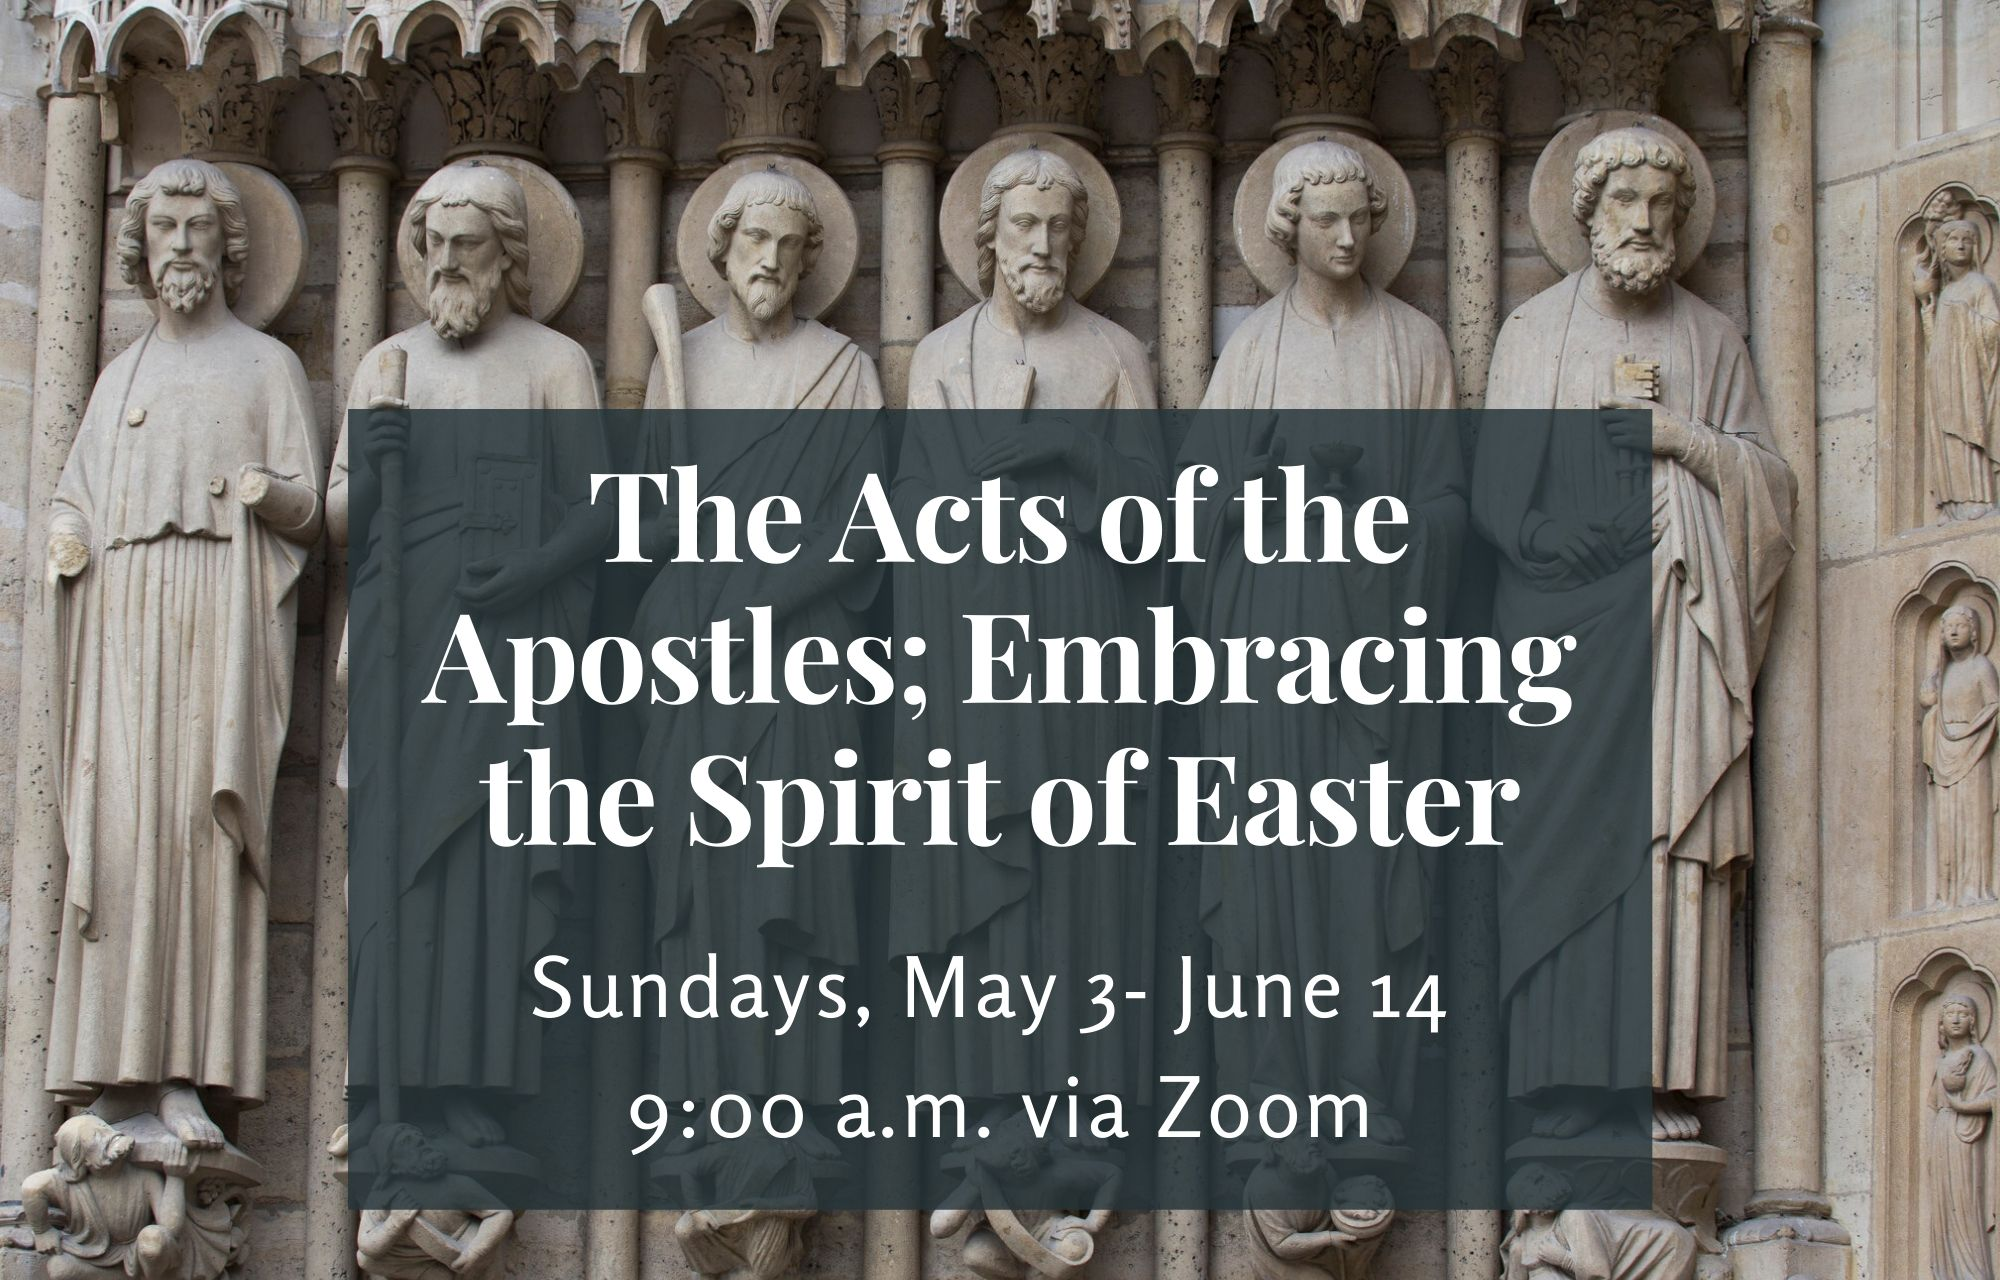 Acts of the Apostles Adult Ed - May 3-June 14